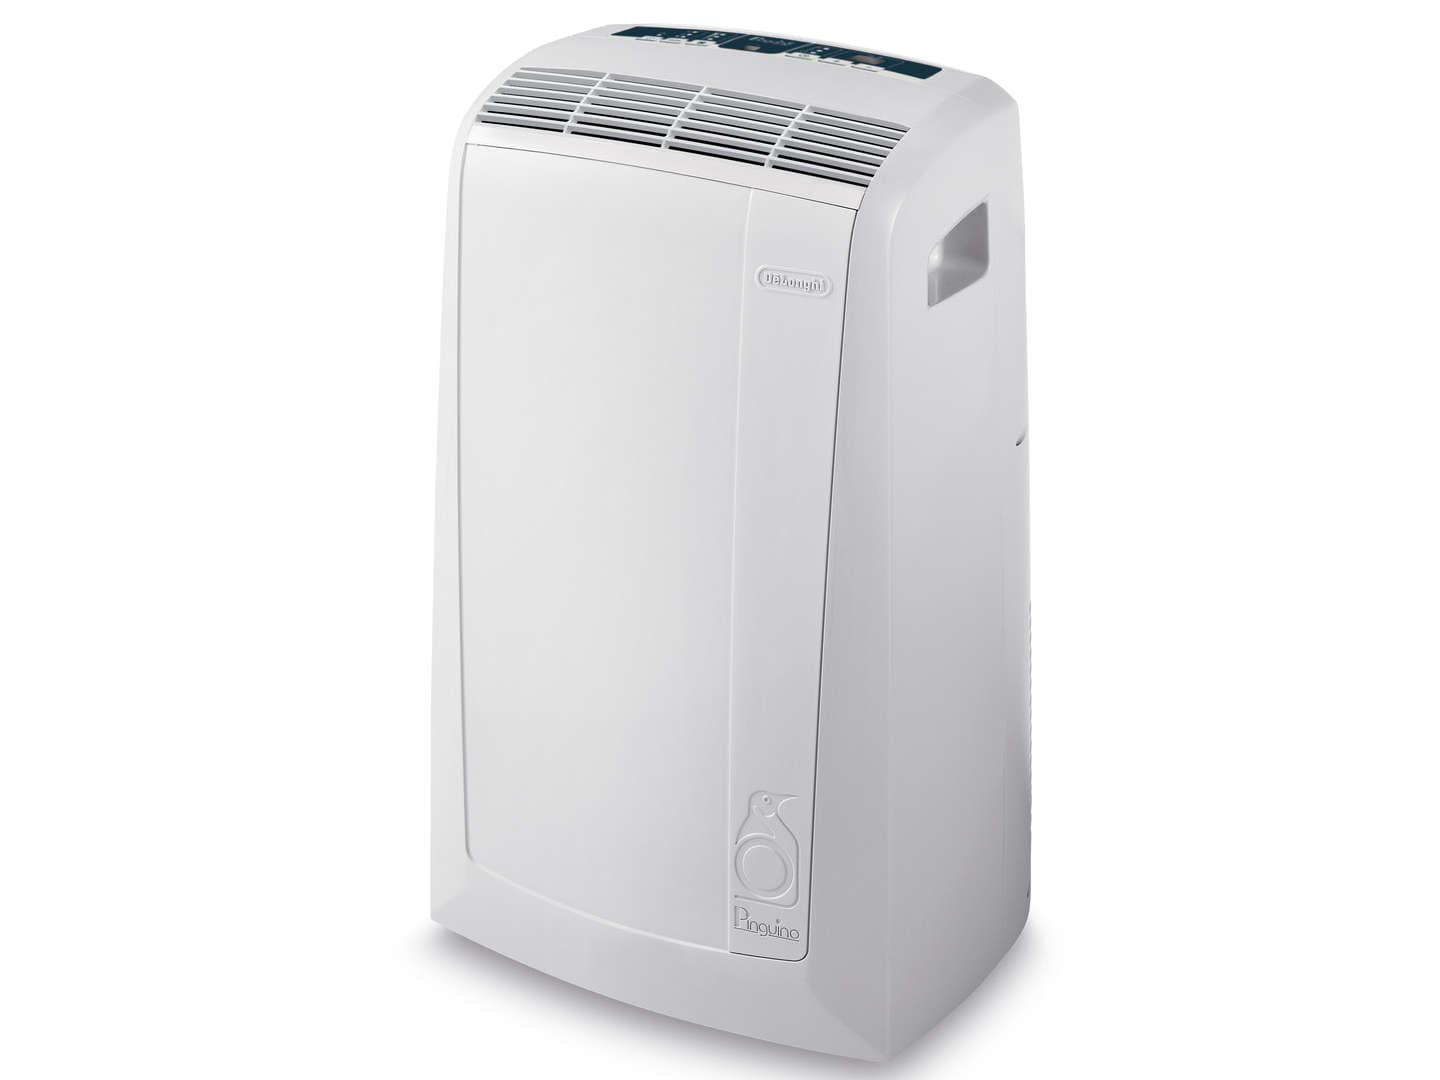 Delonghi air conditioner heater